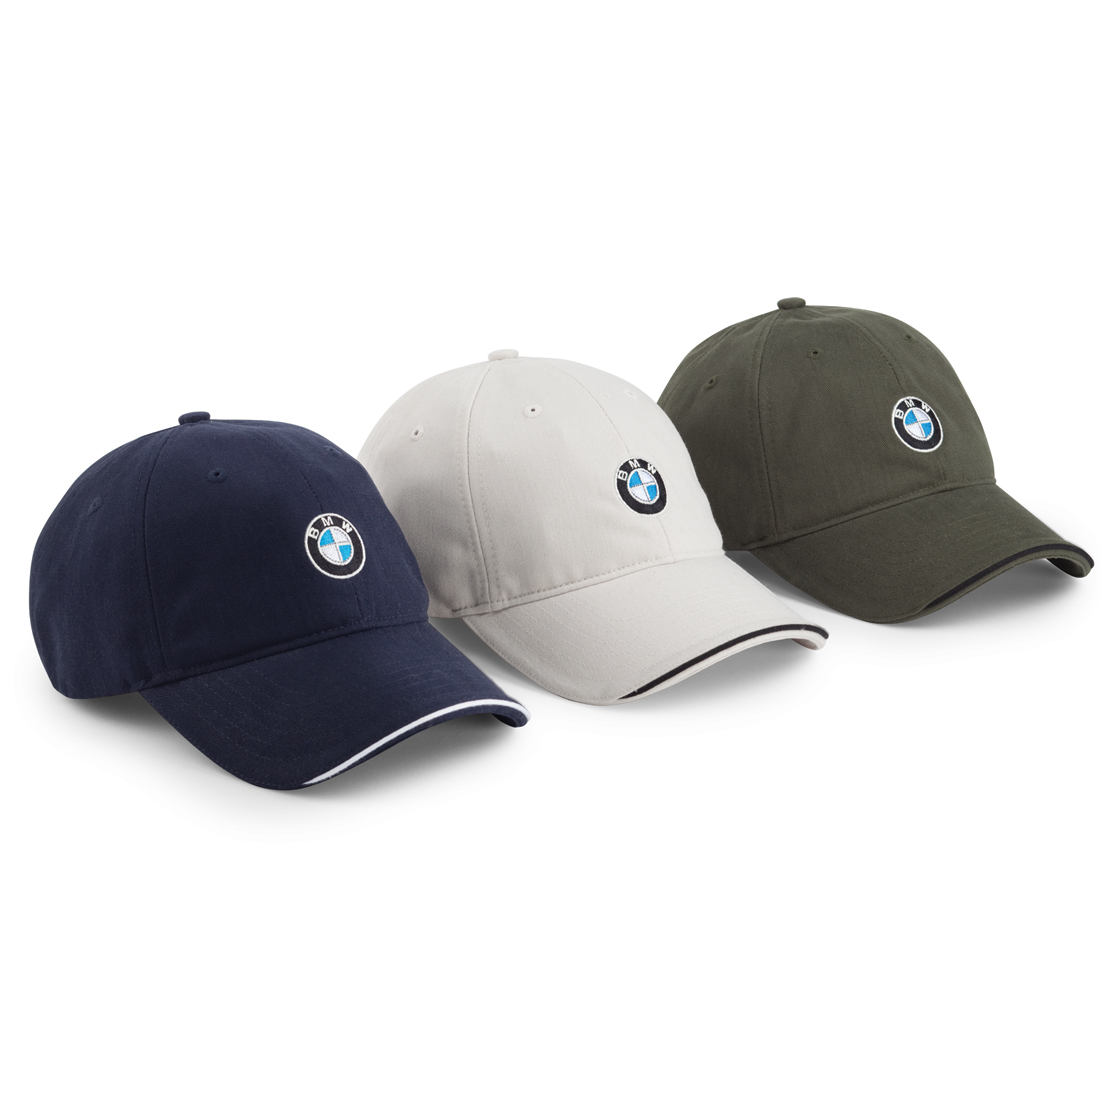 Recycled Brushed Twill Cap